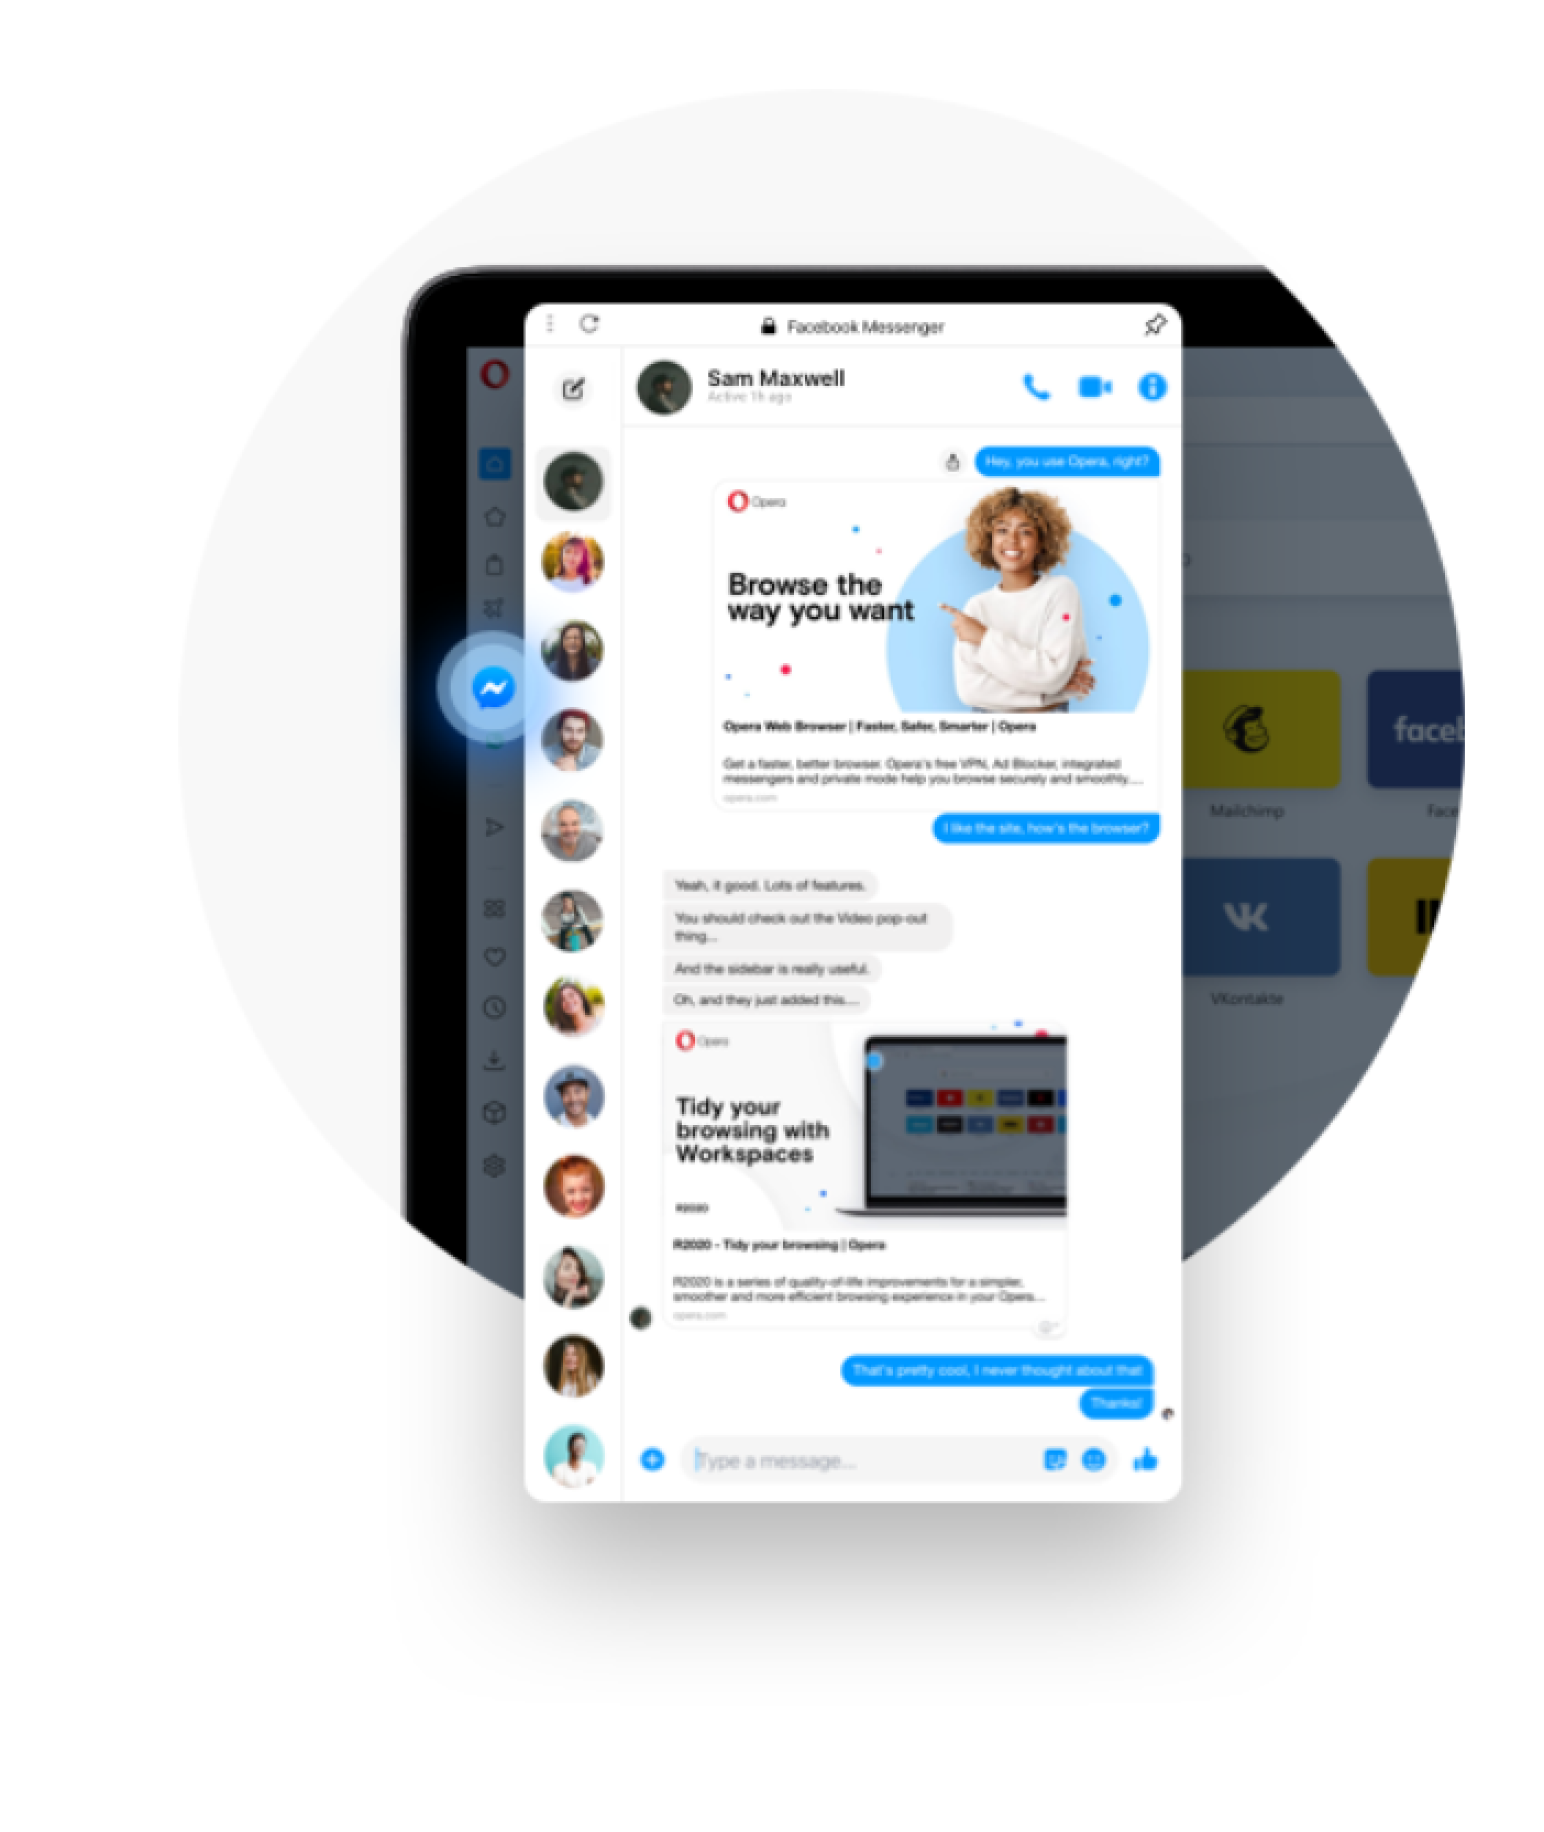 Miniatura de la captura de Facebook Messenger